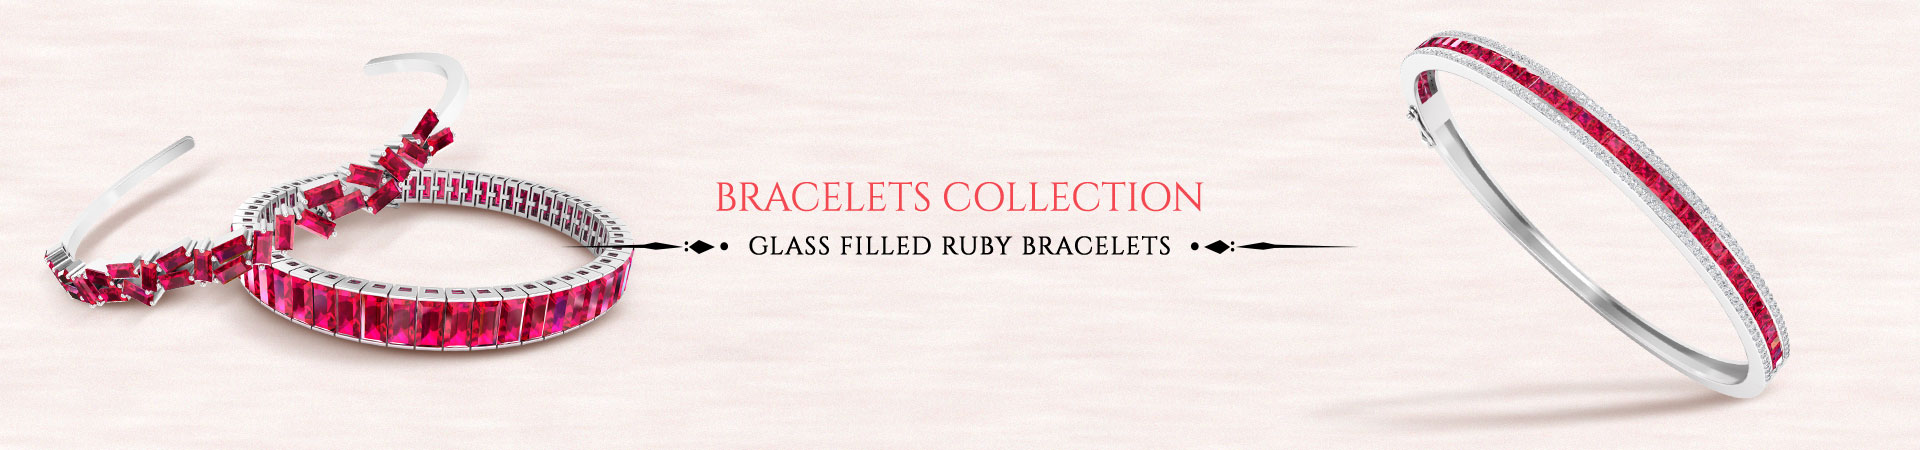 Glass Filled Ruby Bracelets